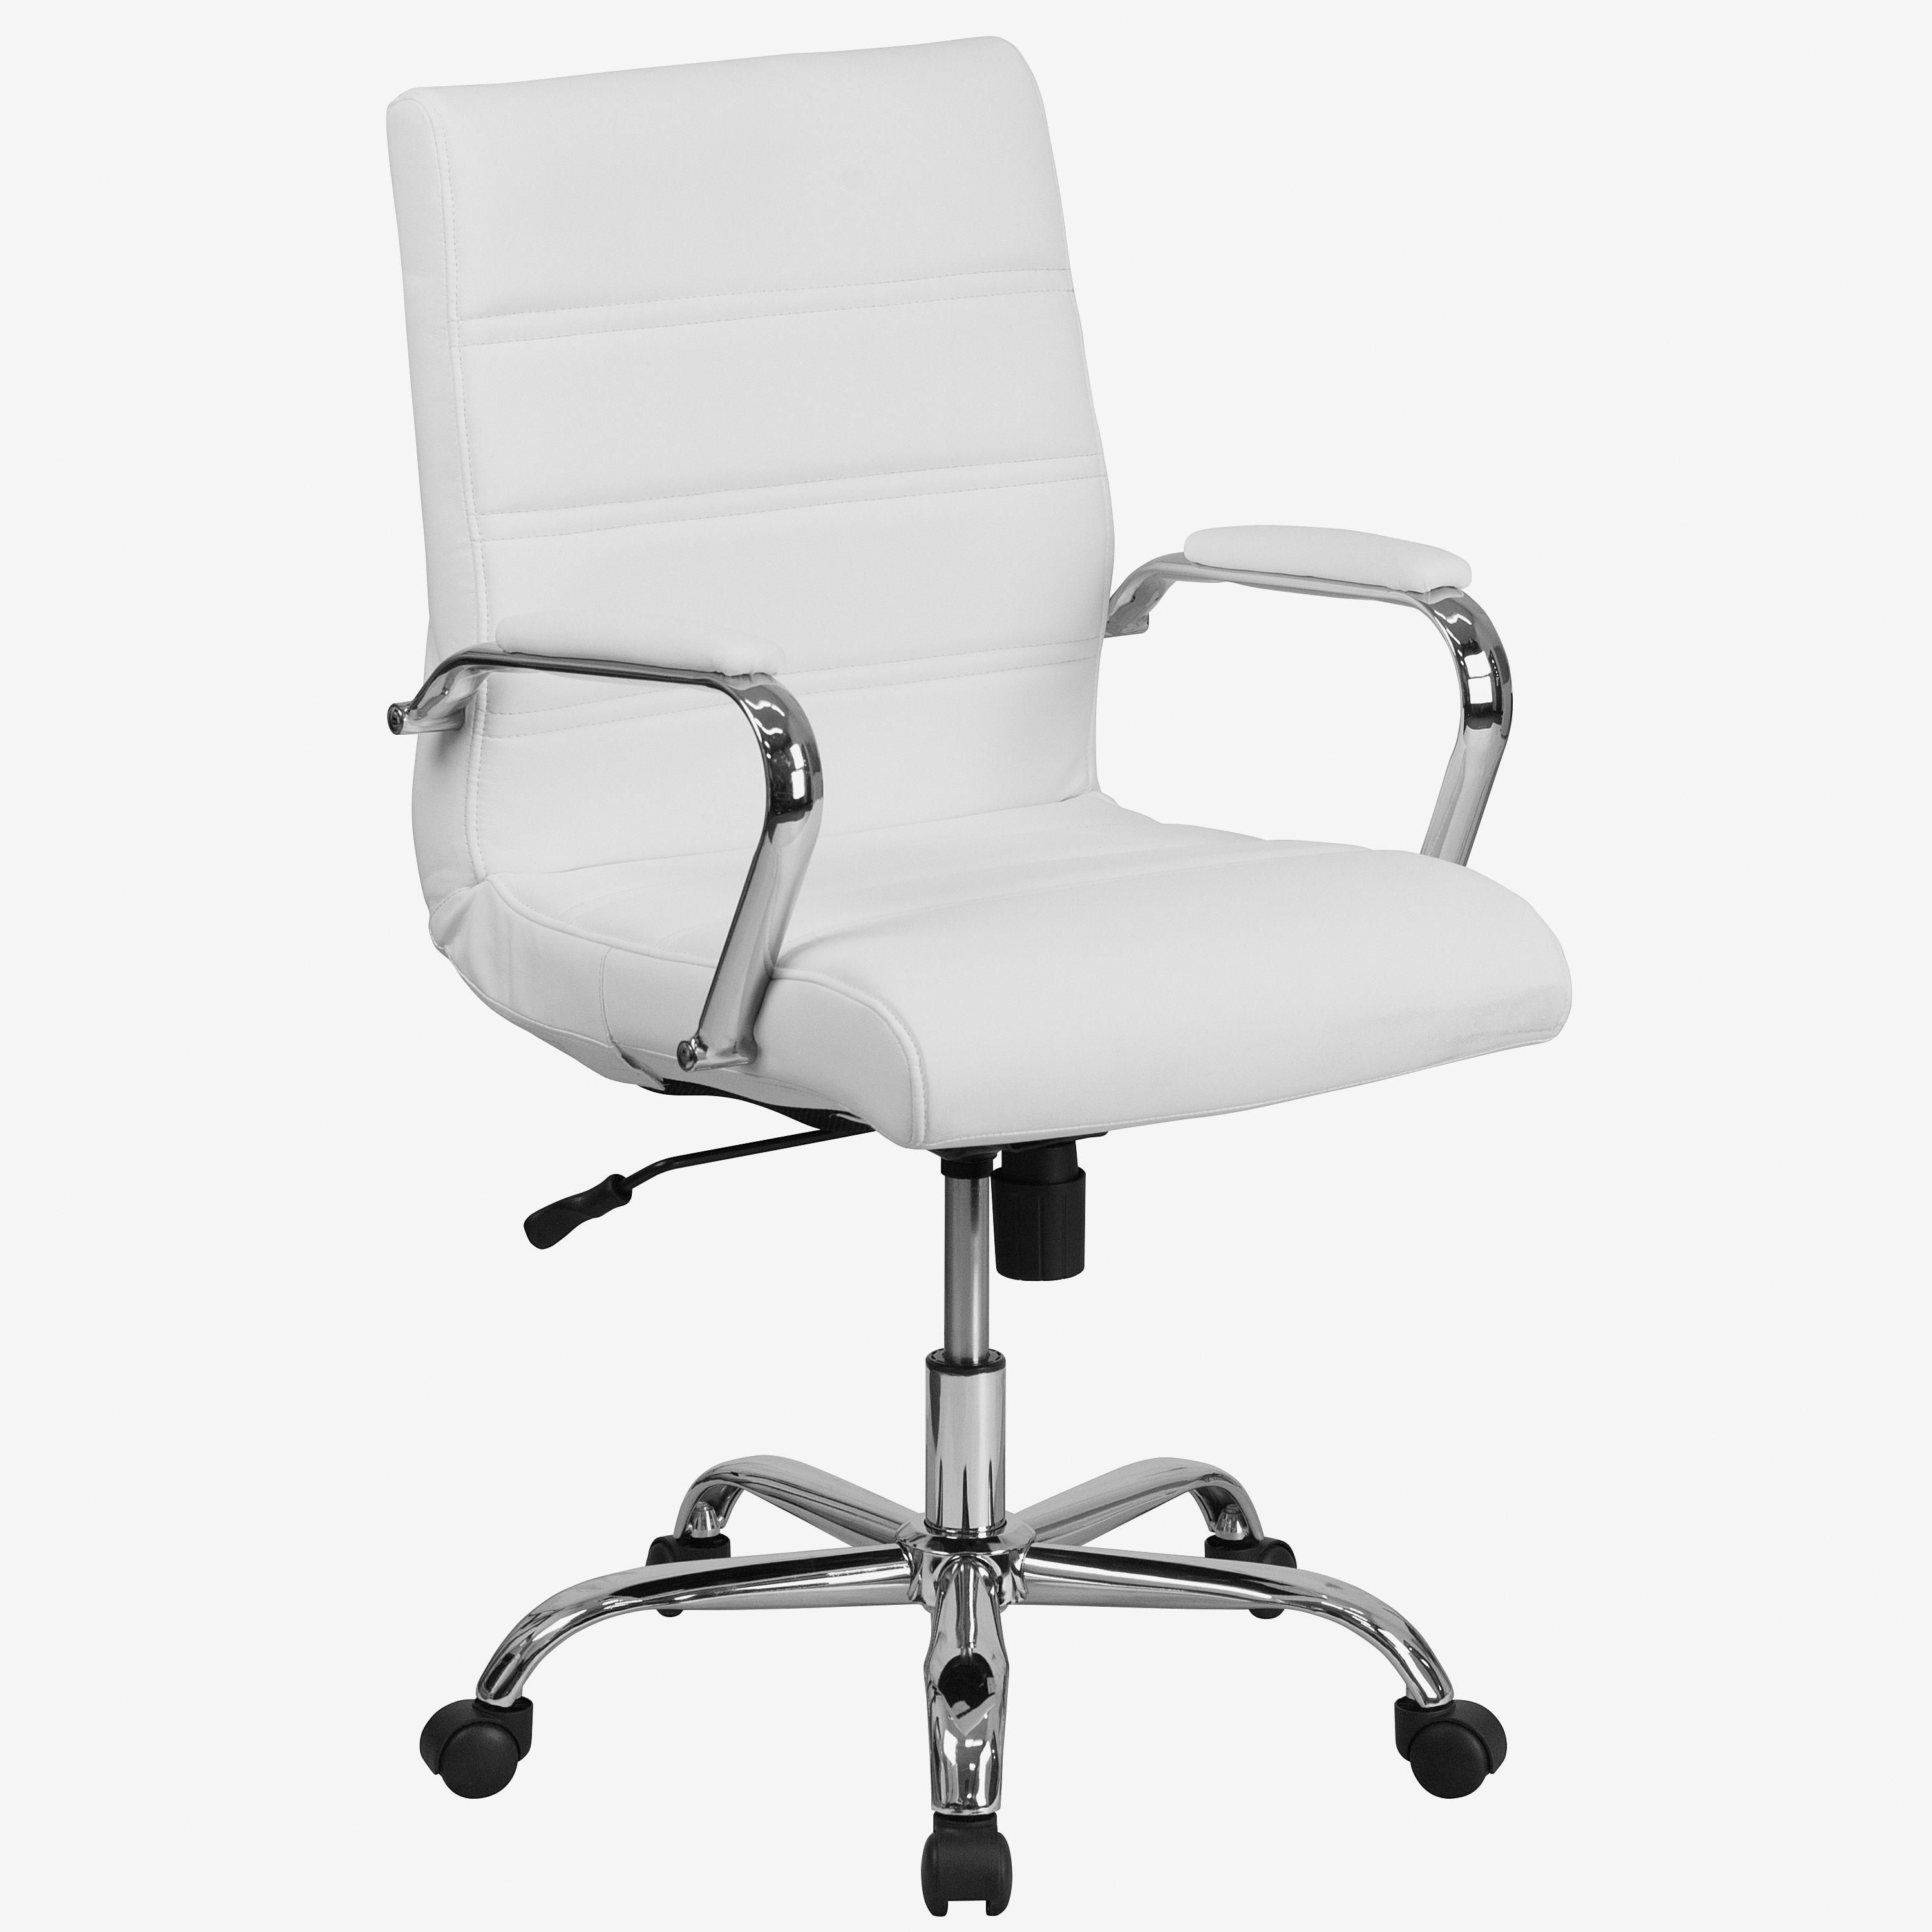 Chairs Bed Bath And Beyond Largelivingroomchairs Homeofficechairs In 2020 Office Chair Design Cheap Office Chairs Office Chair